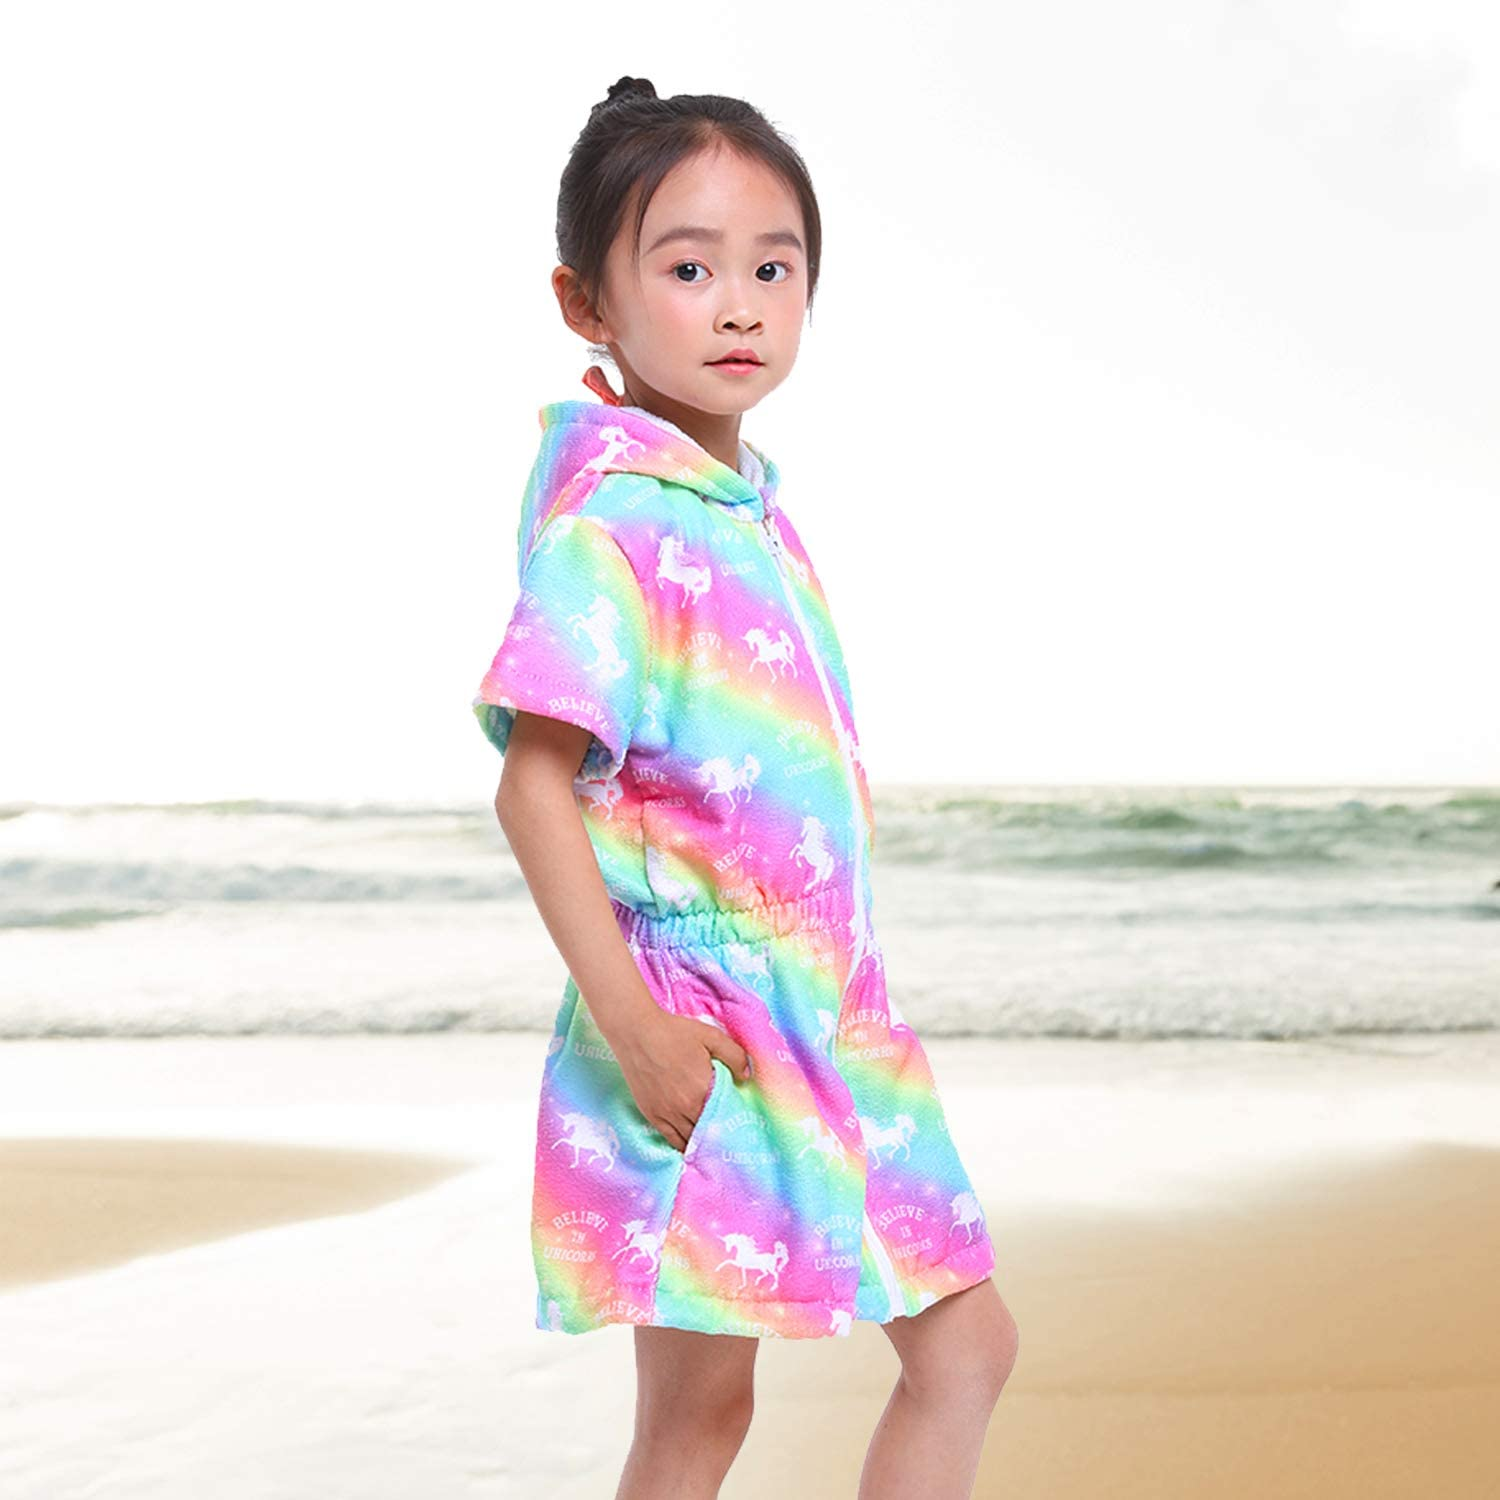 Cover-Ups & Wraps Sylfairy Unicorn Cover Up for Girls Terry Swim Cover Ups  Hooded Terry Kids Cover Up Bathing Suit Beach Dress 4-9Years Clothing,  Shoes & Jewelry samel.com.br